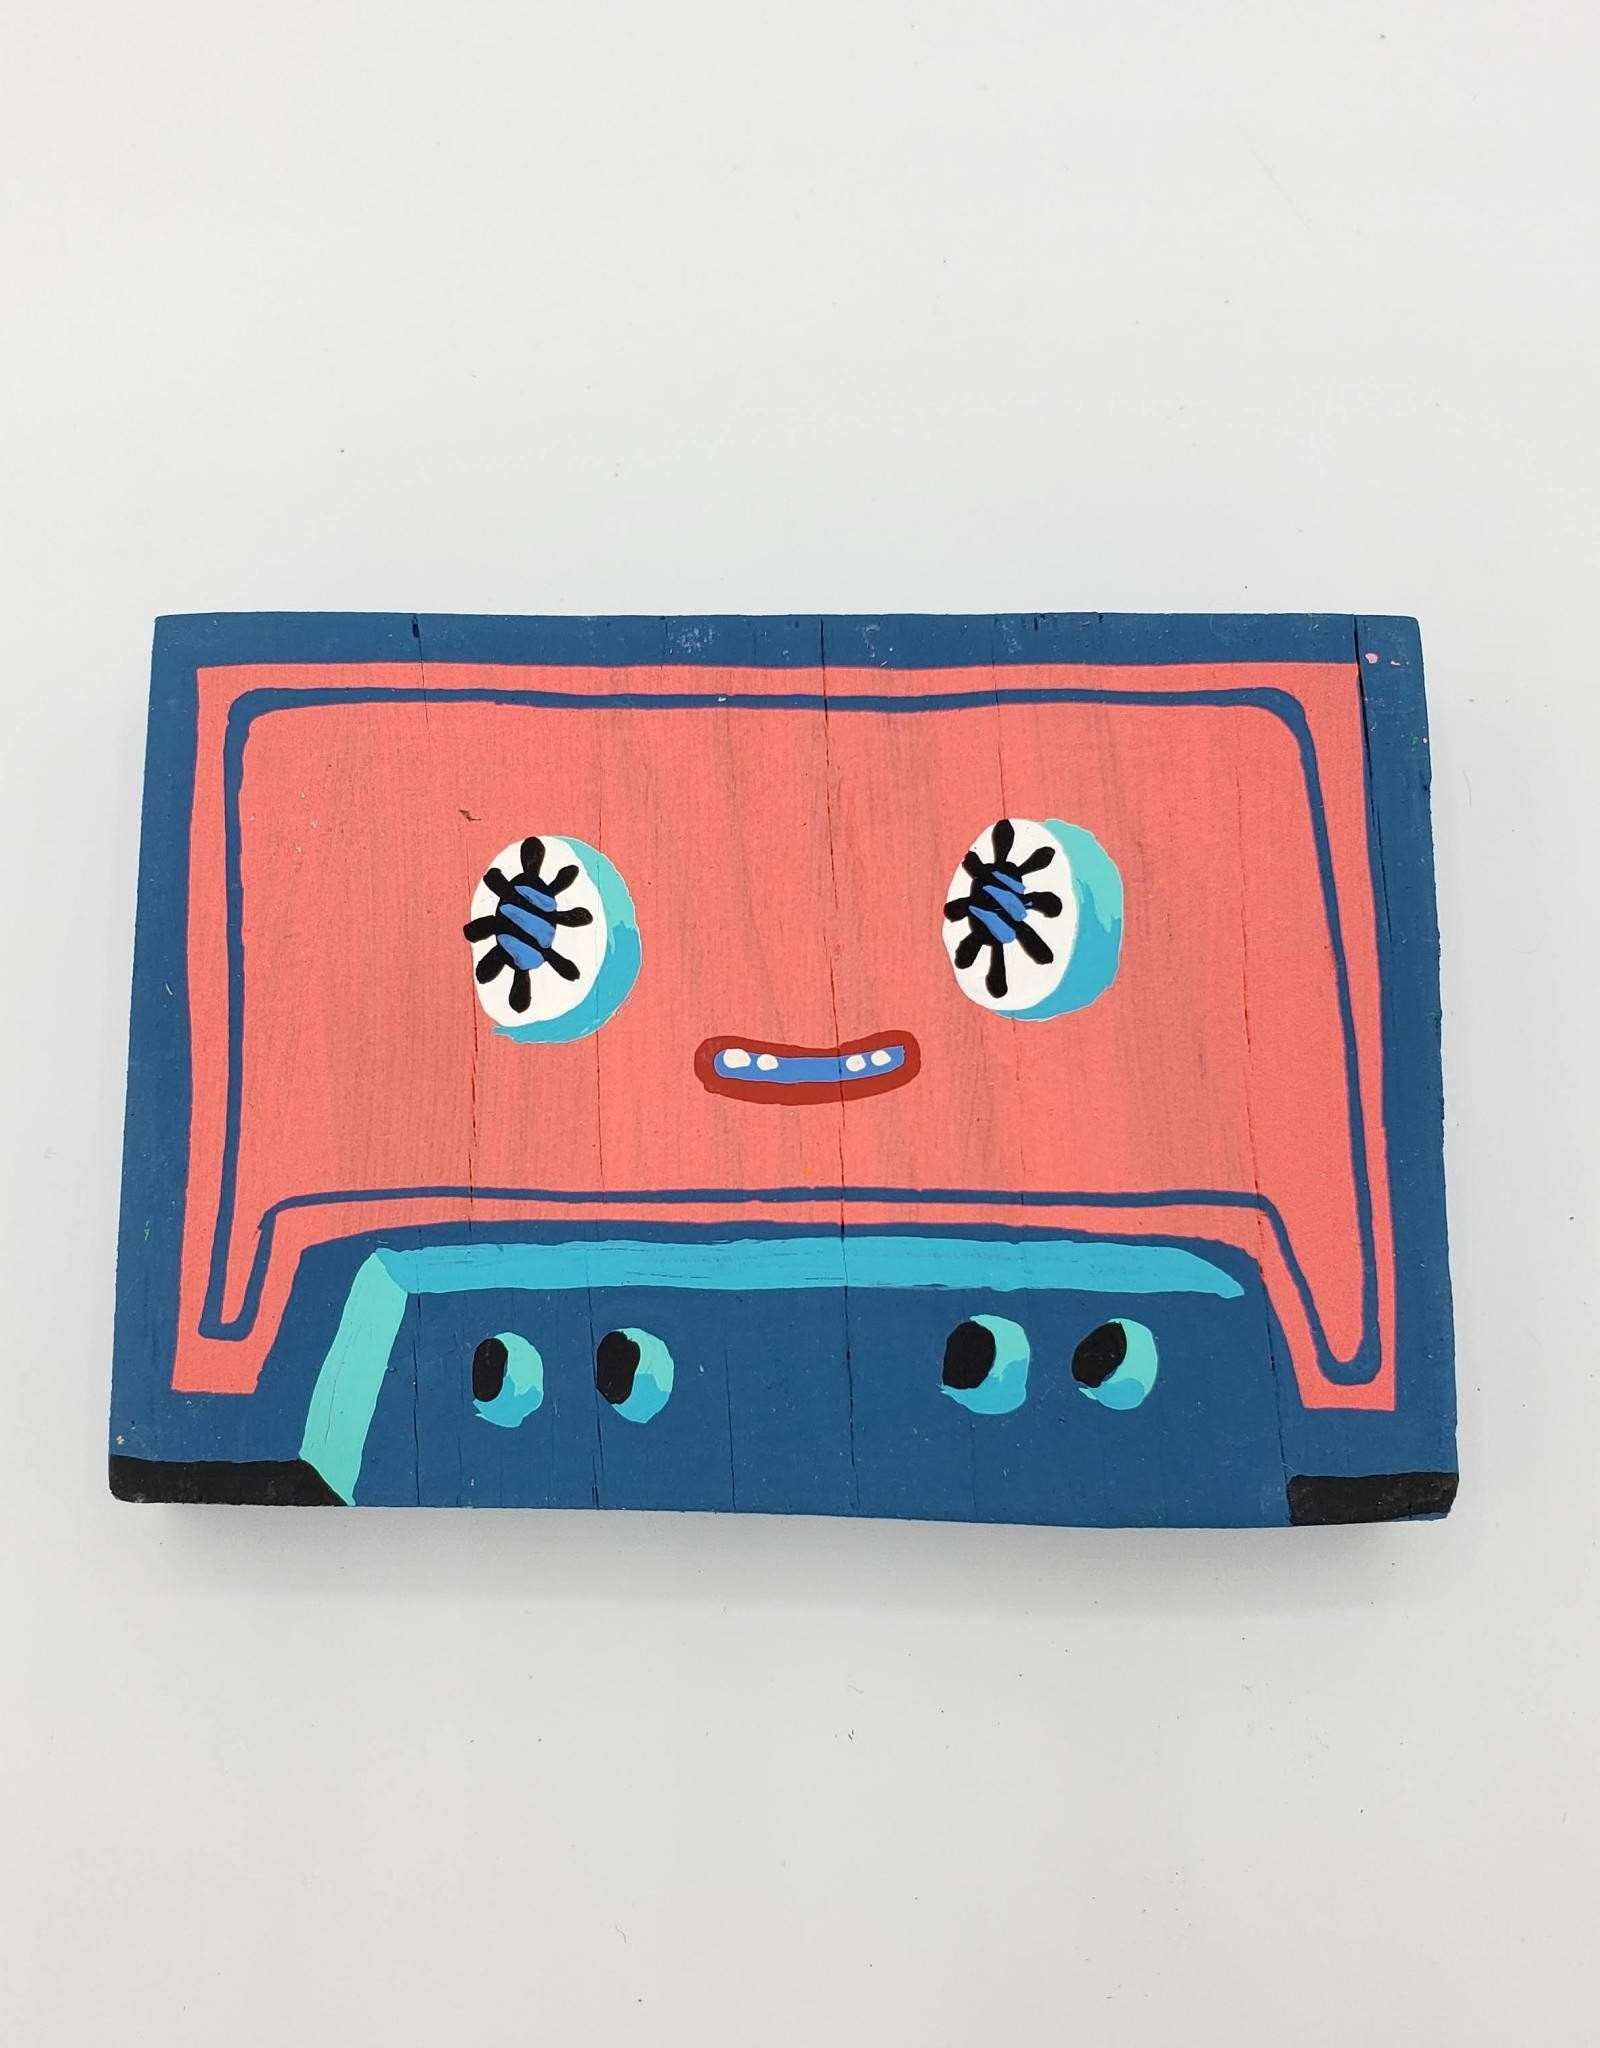 Pink & Blue Cassette Tape Painting by Tripper Dungan